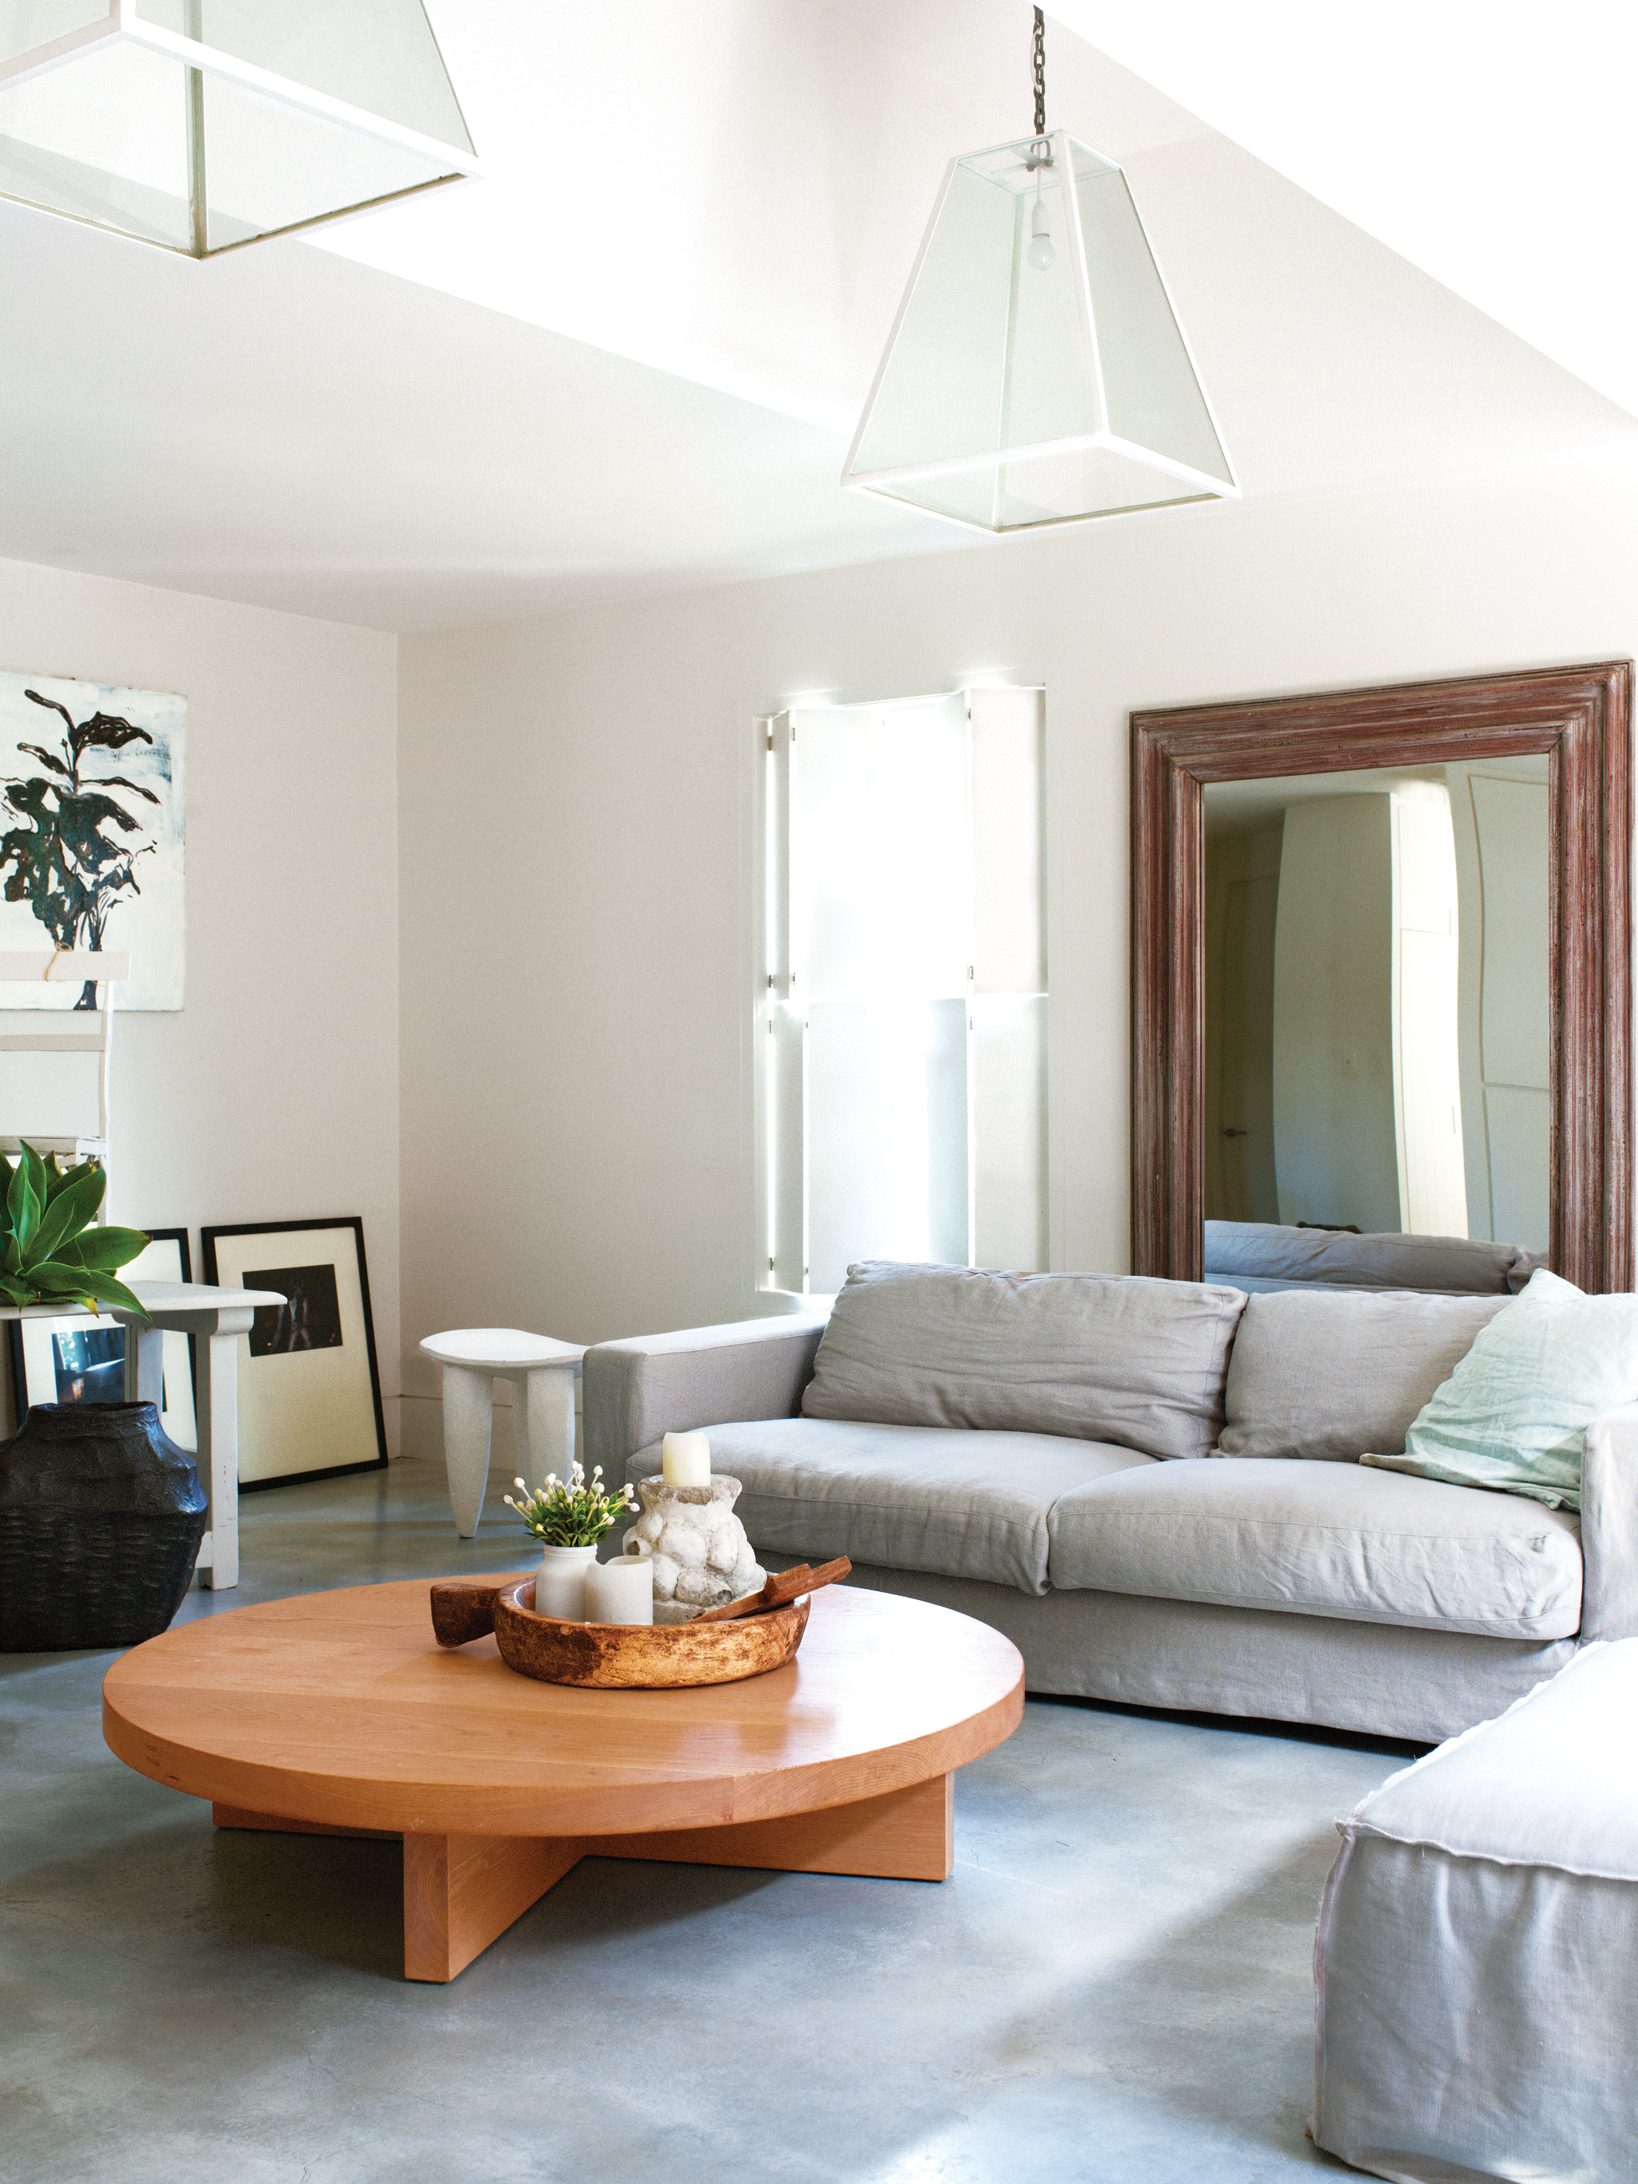 Make Small Living Room Look Bigger Four Tips To Make A Small Room Look Bigger